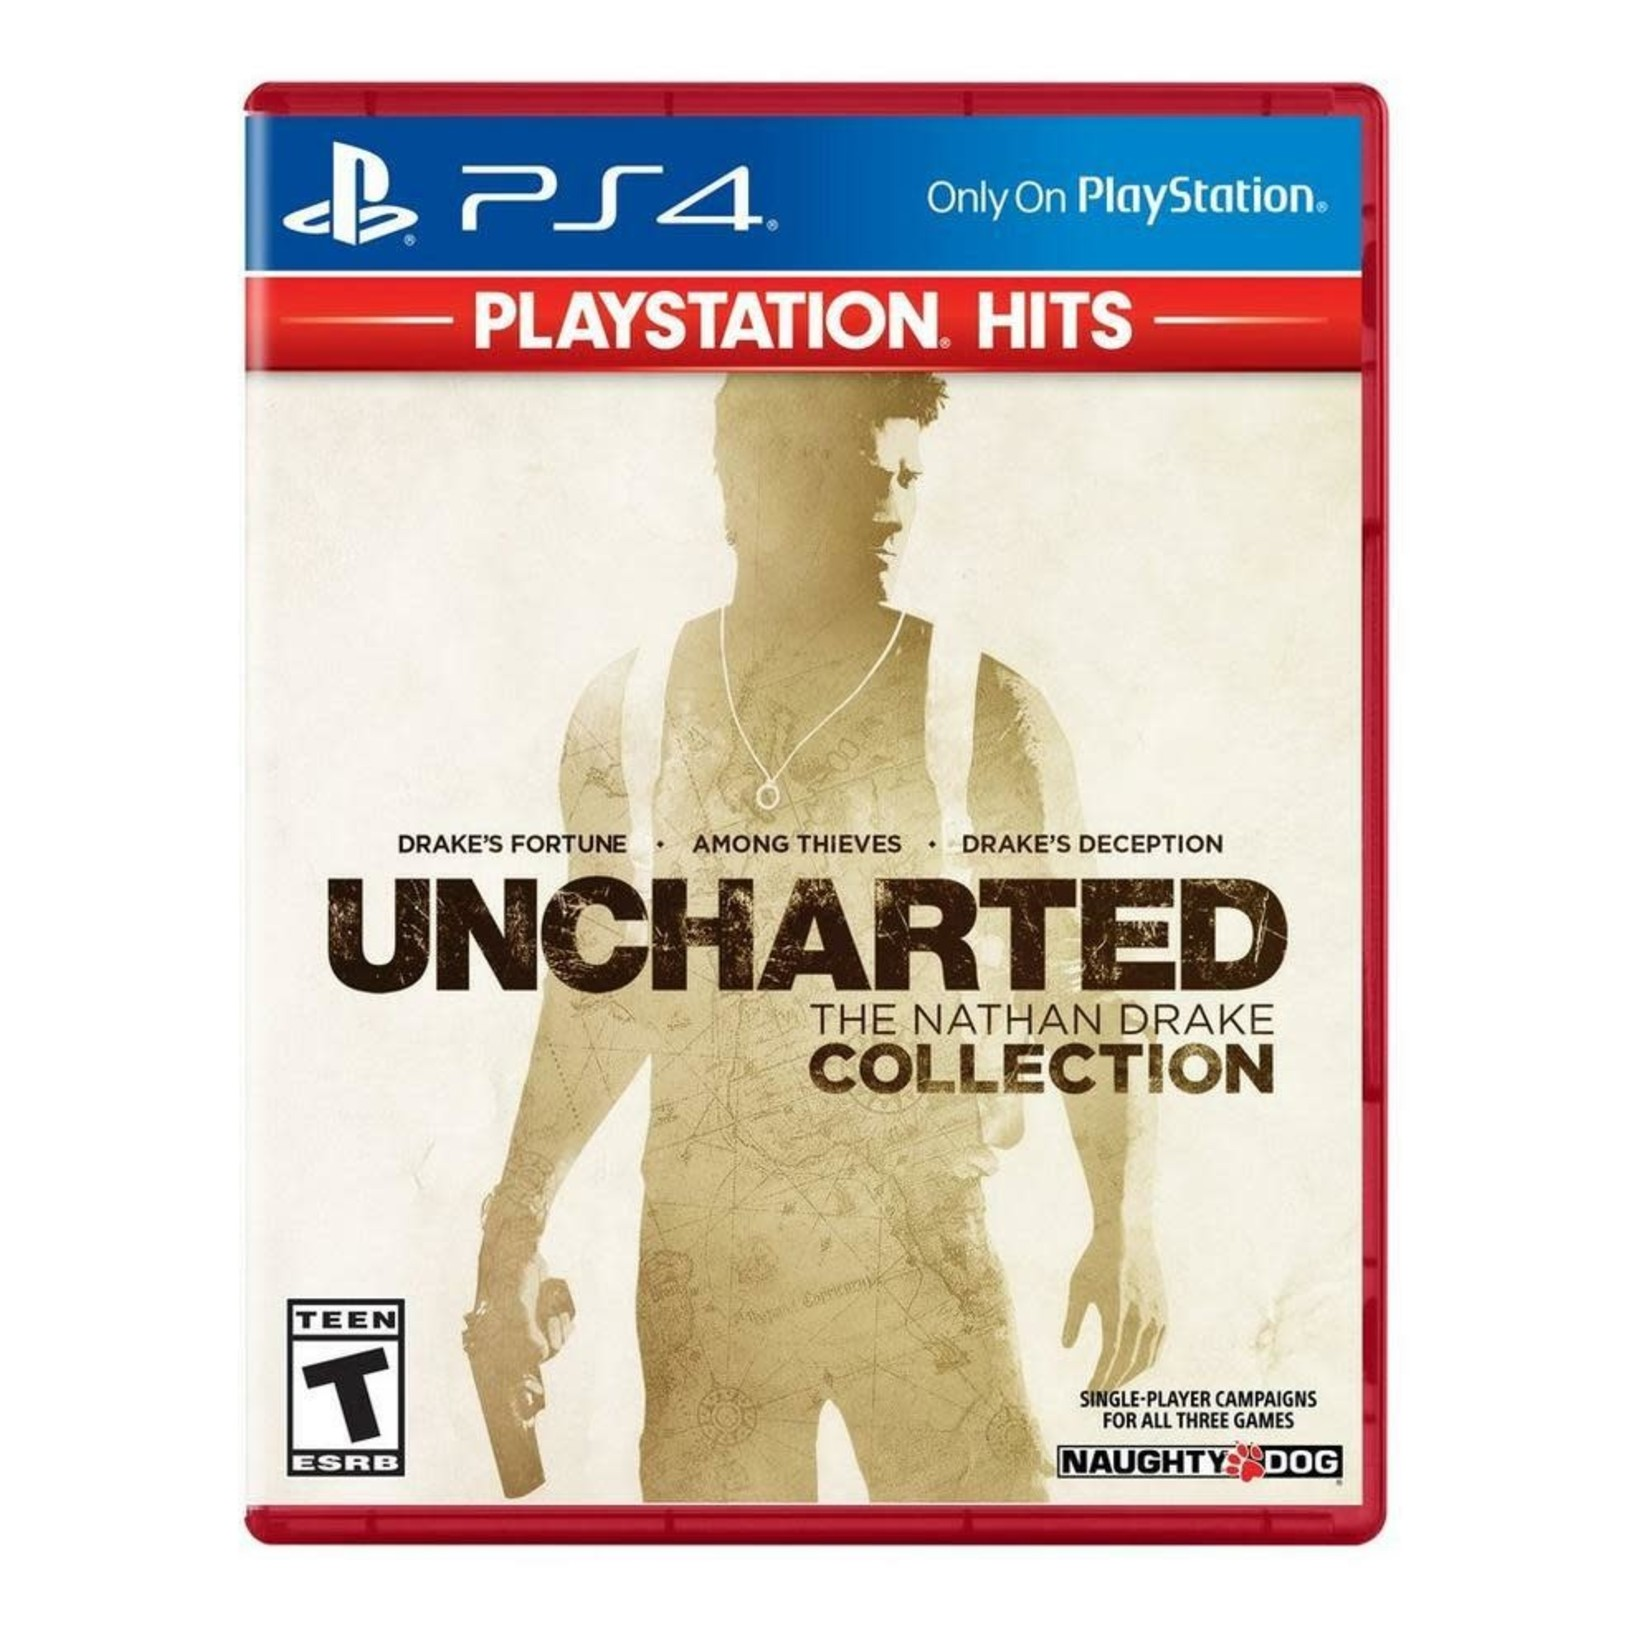 PS4U-Uncharted: The Nathan Drake Collection